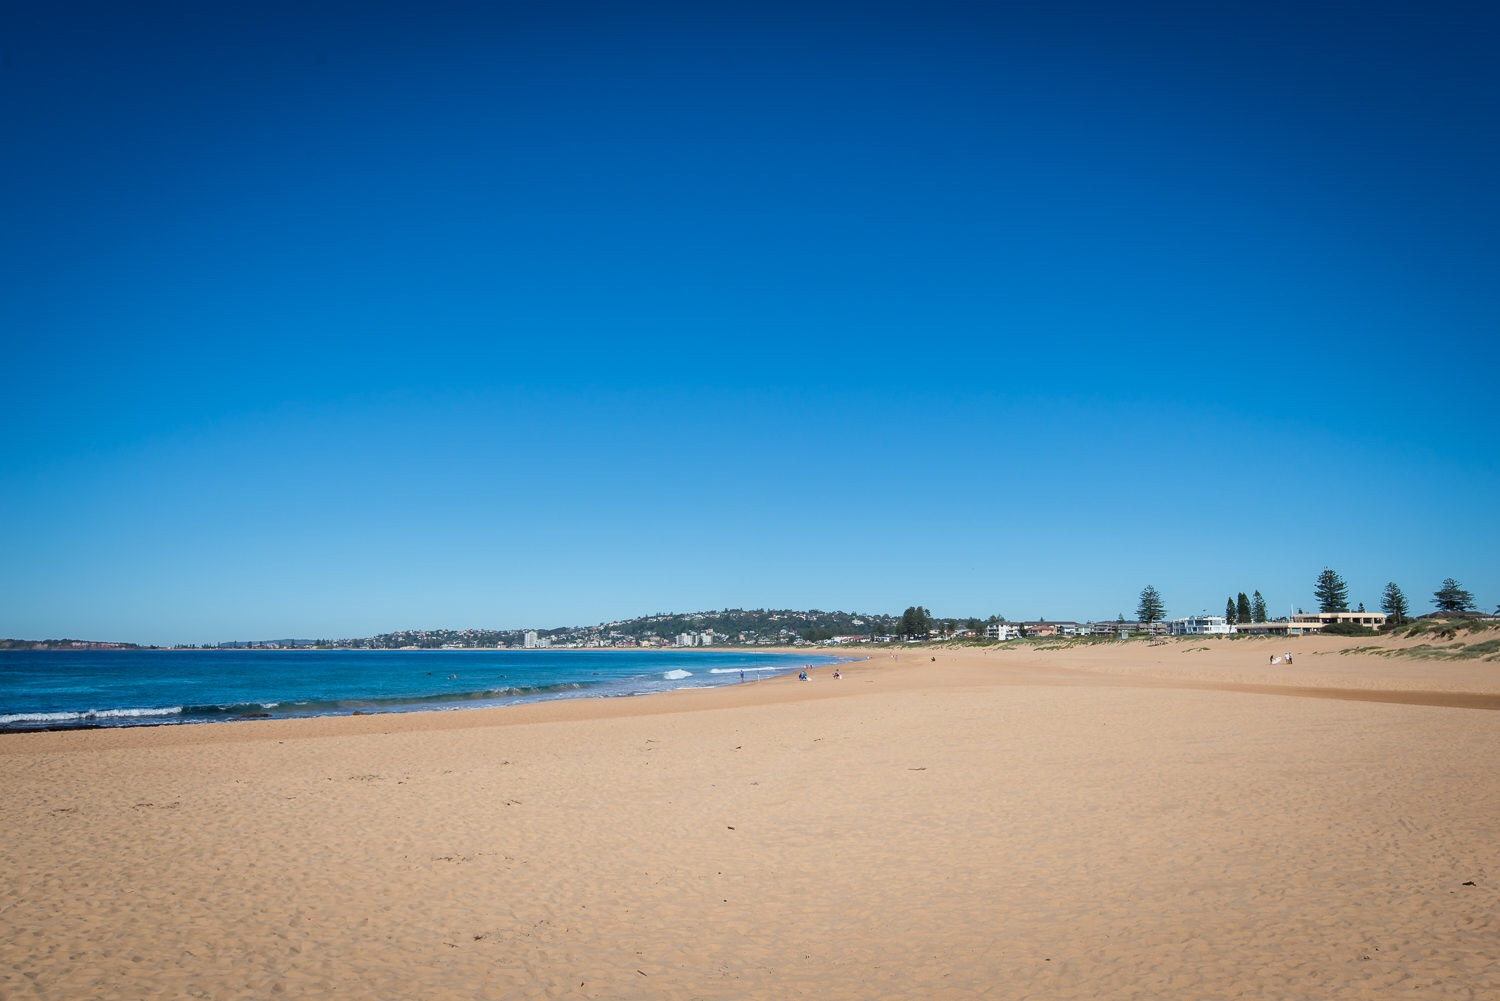 Looking down Narrabeen beach. To the right is the end of the lagoon and behind to the left are the tidal pools